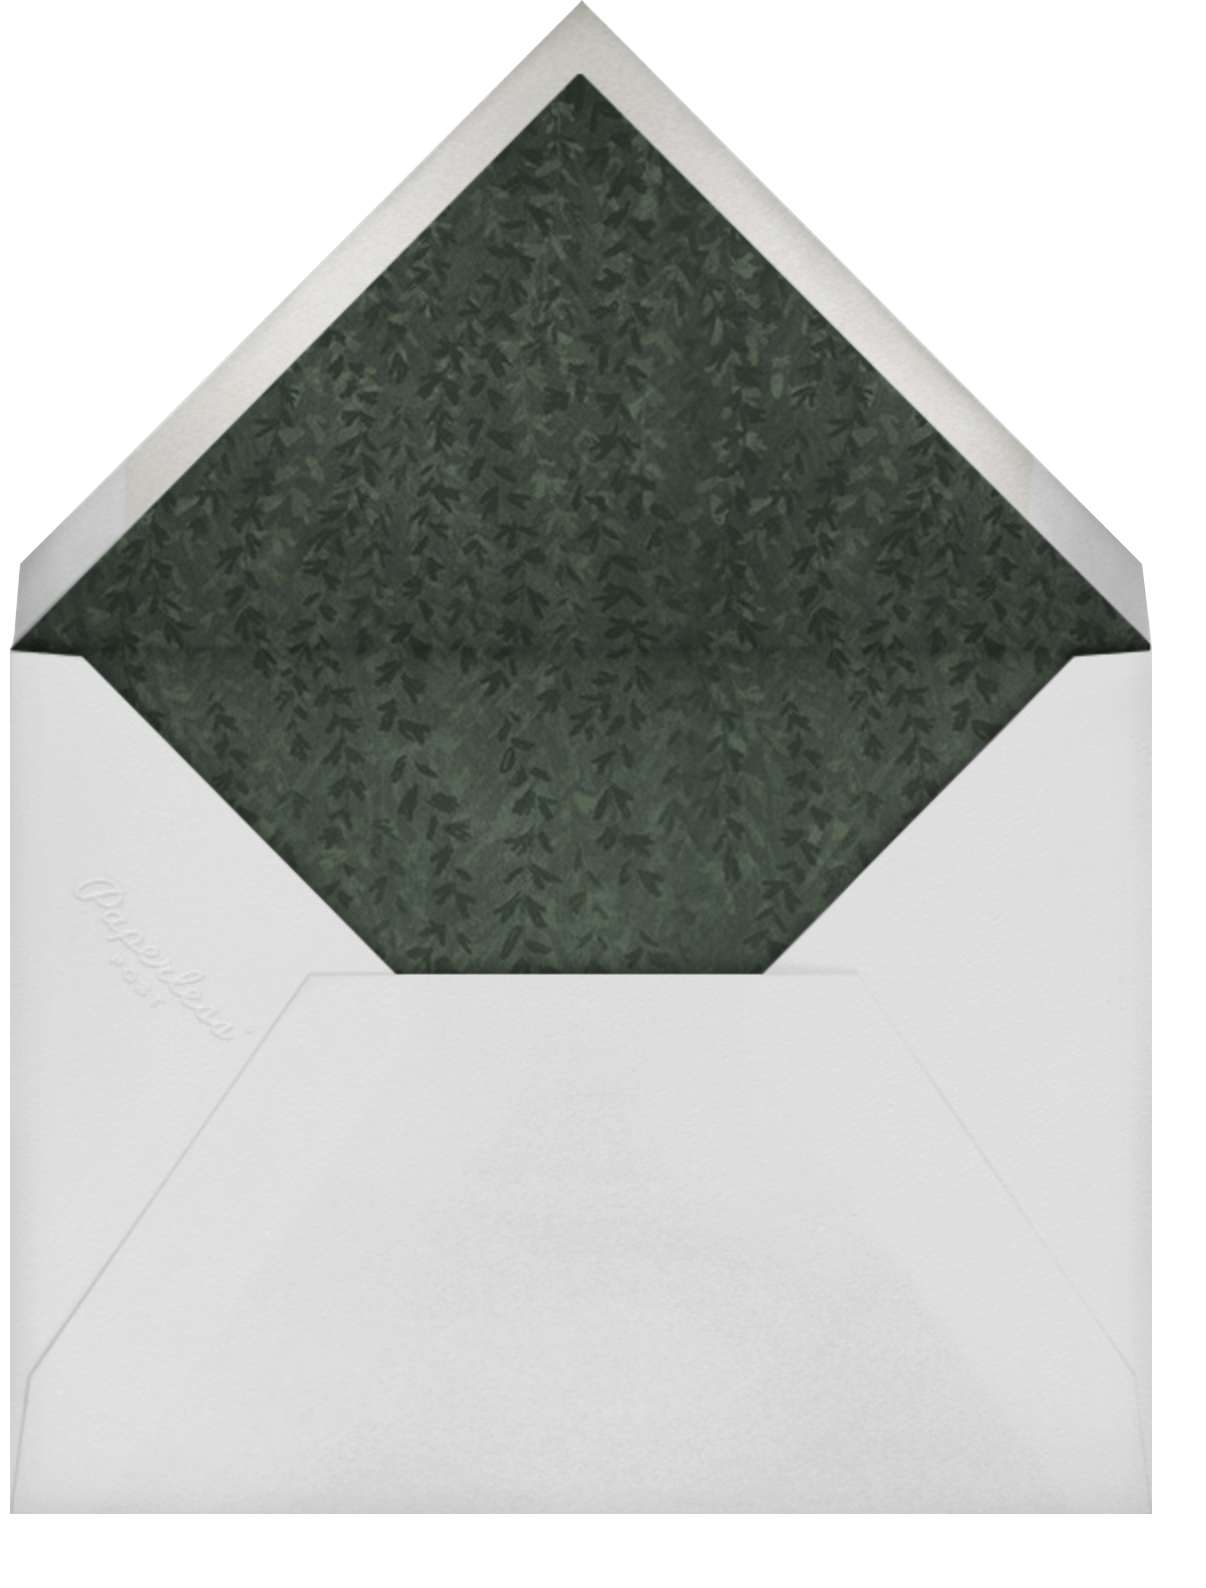 Ivalace - Paperless Post - Wine tasting invitations - envelope back